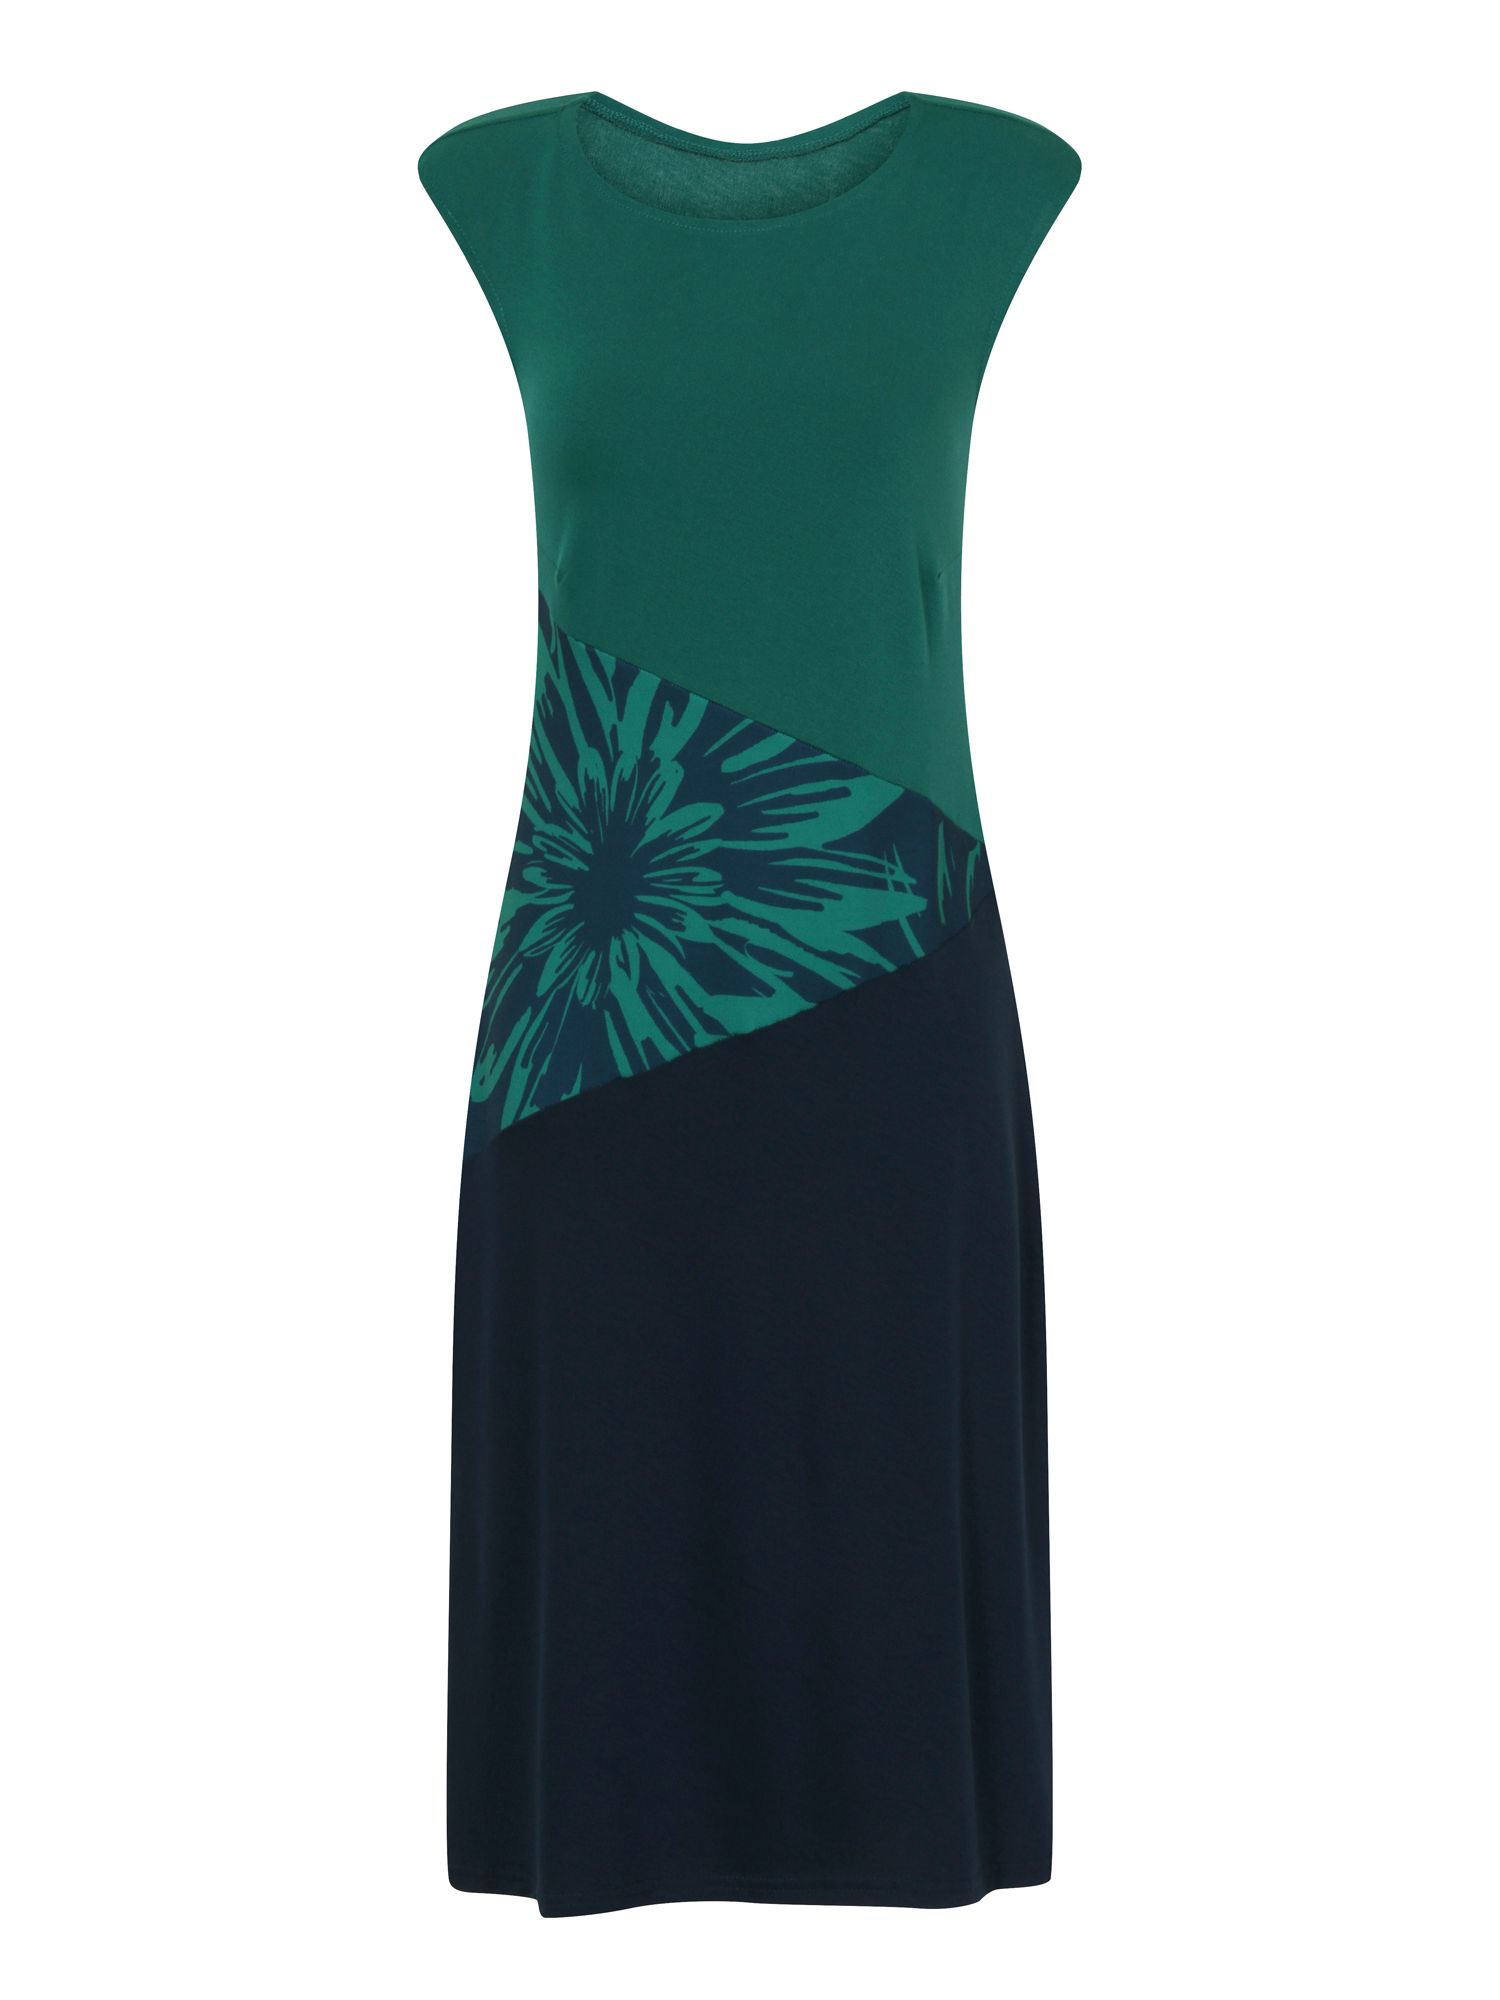 HotSquash Floral Waist Dress in Clever Fabric, Green